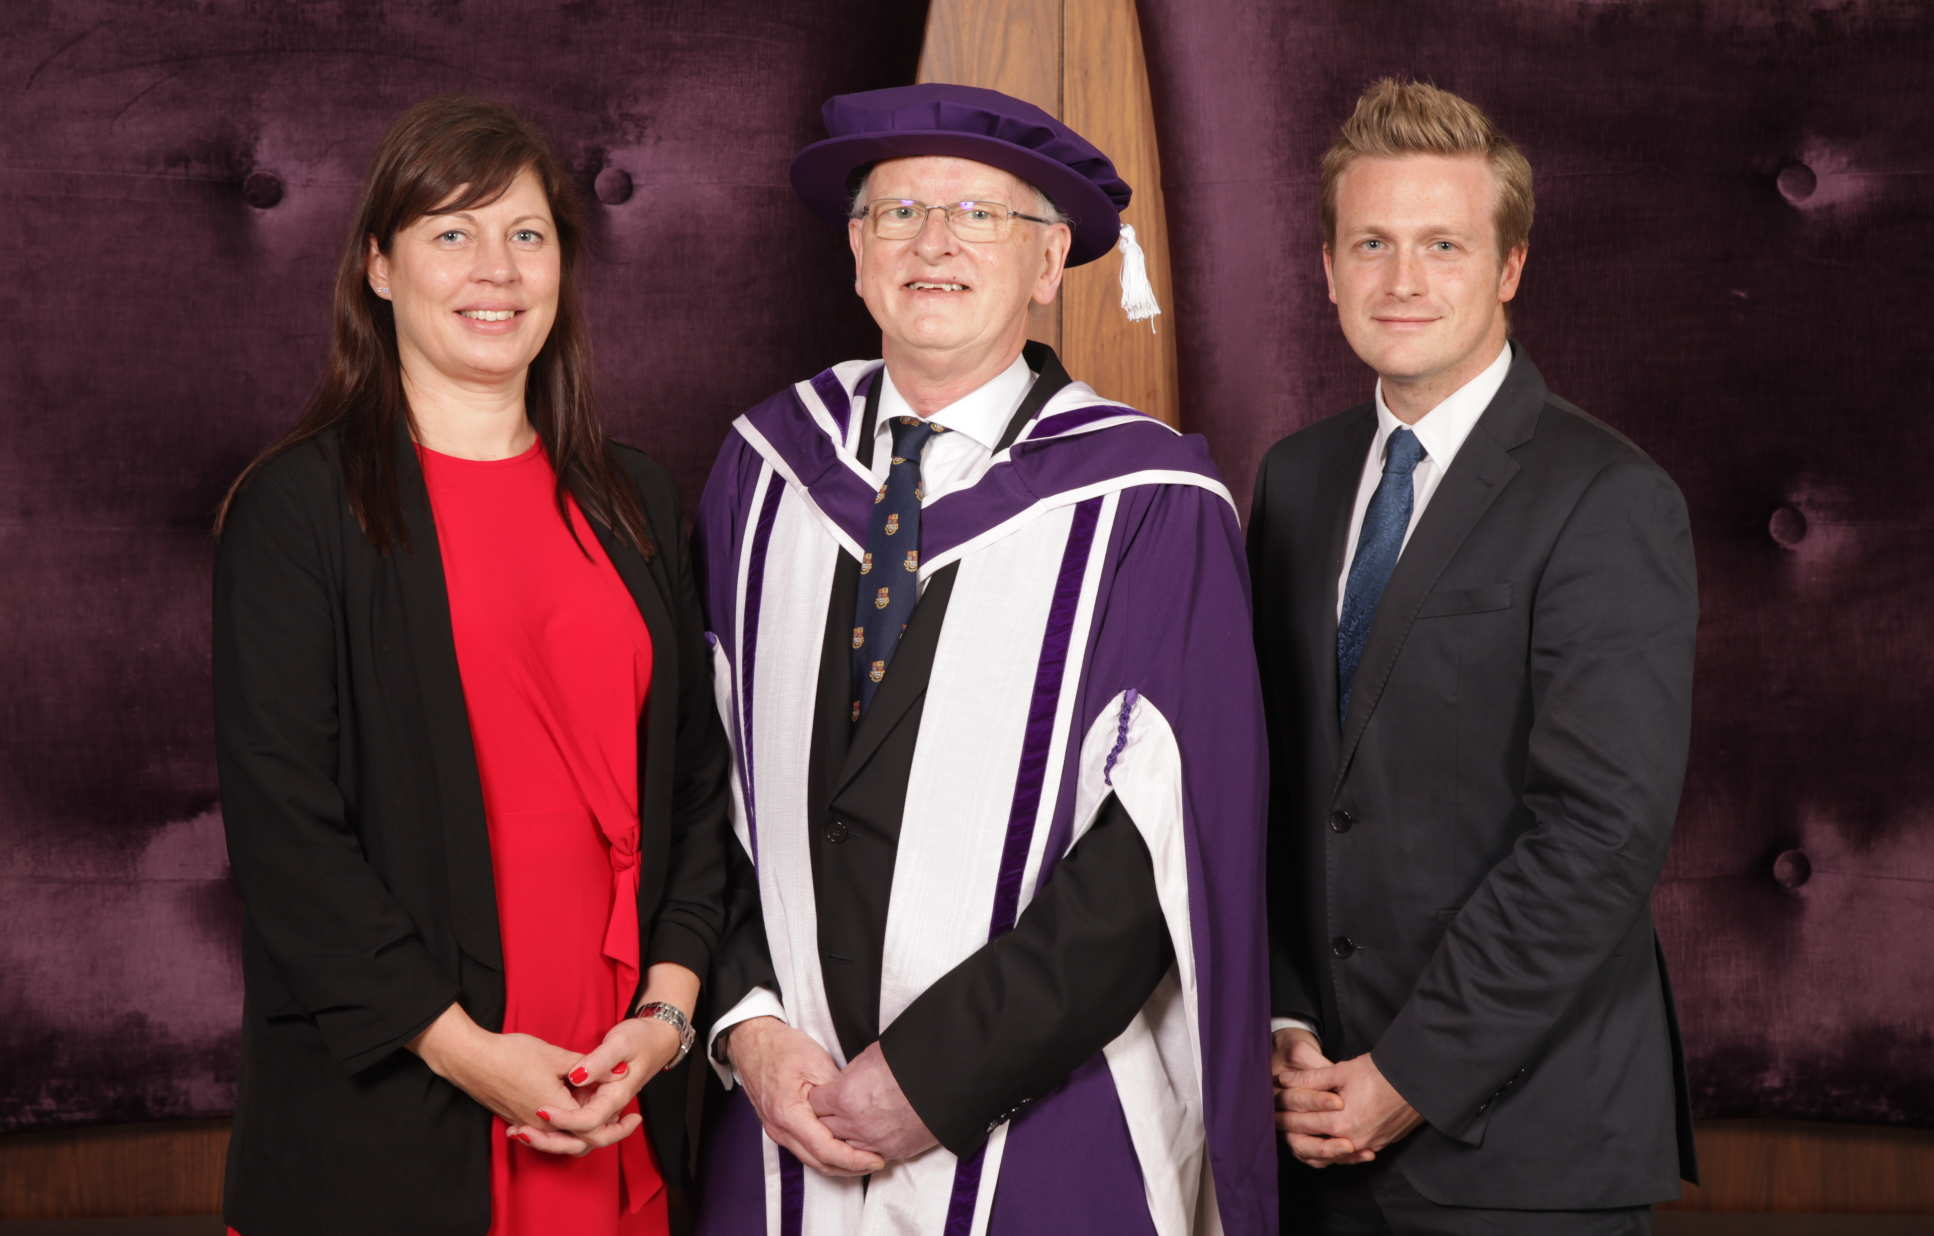 Professor Stirling with Executive Assistant Kathryn Clark and Executive Officer James McSean